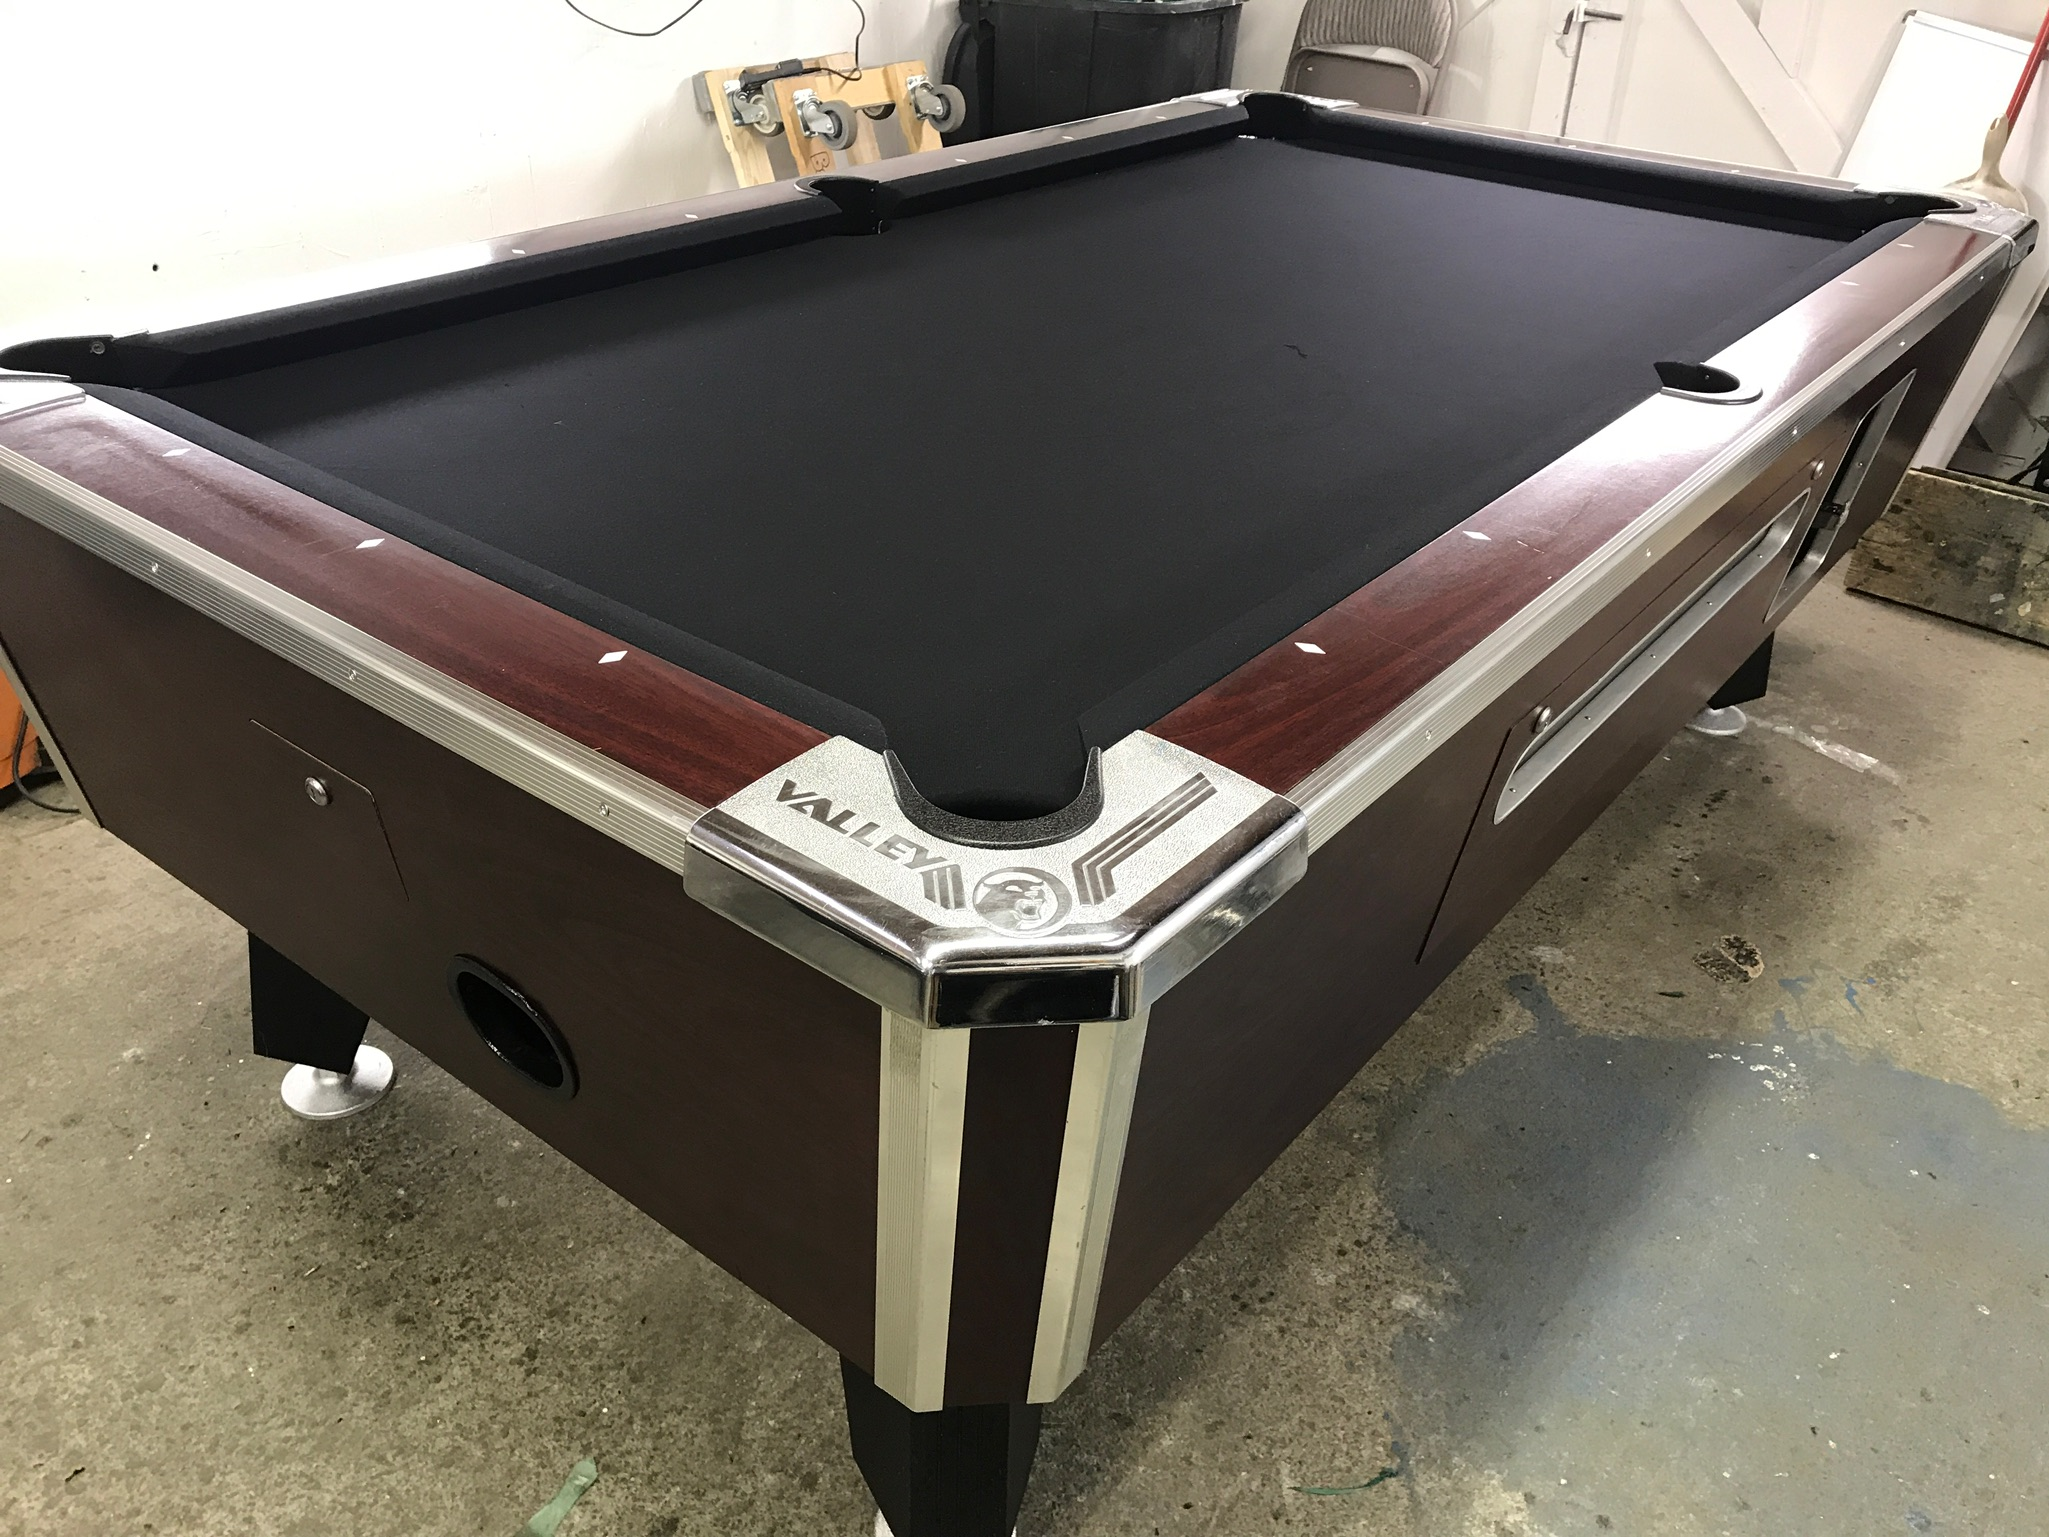 Used Coin Operated Pool Table Table Used Coin Operated Bar - Valley bar pool table for sale